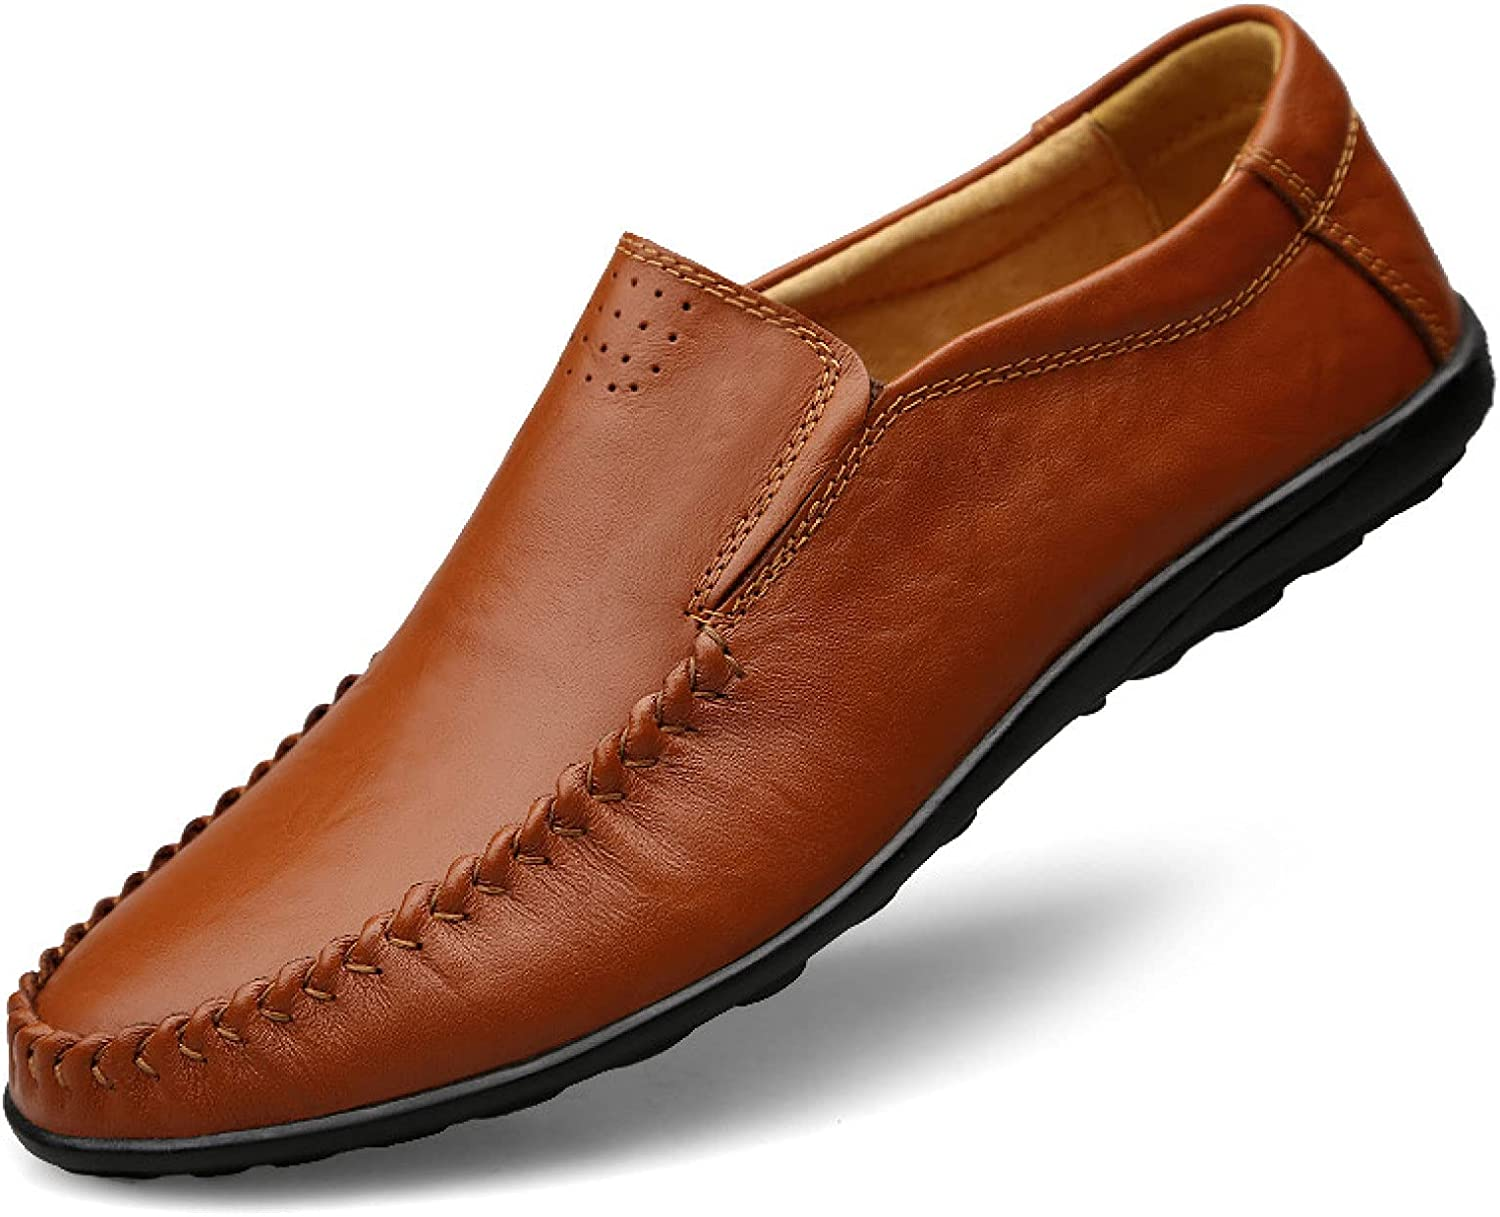 Men Luxury Leather Slip-on Driving Shoes Walking Wearable Simplicity Loafers Popular Business Male Durable Flats